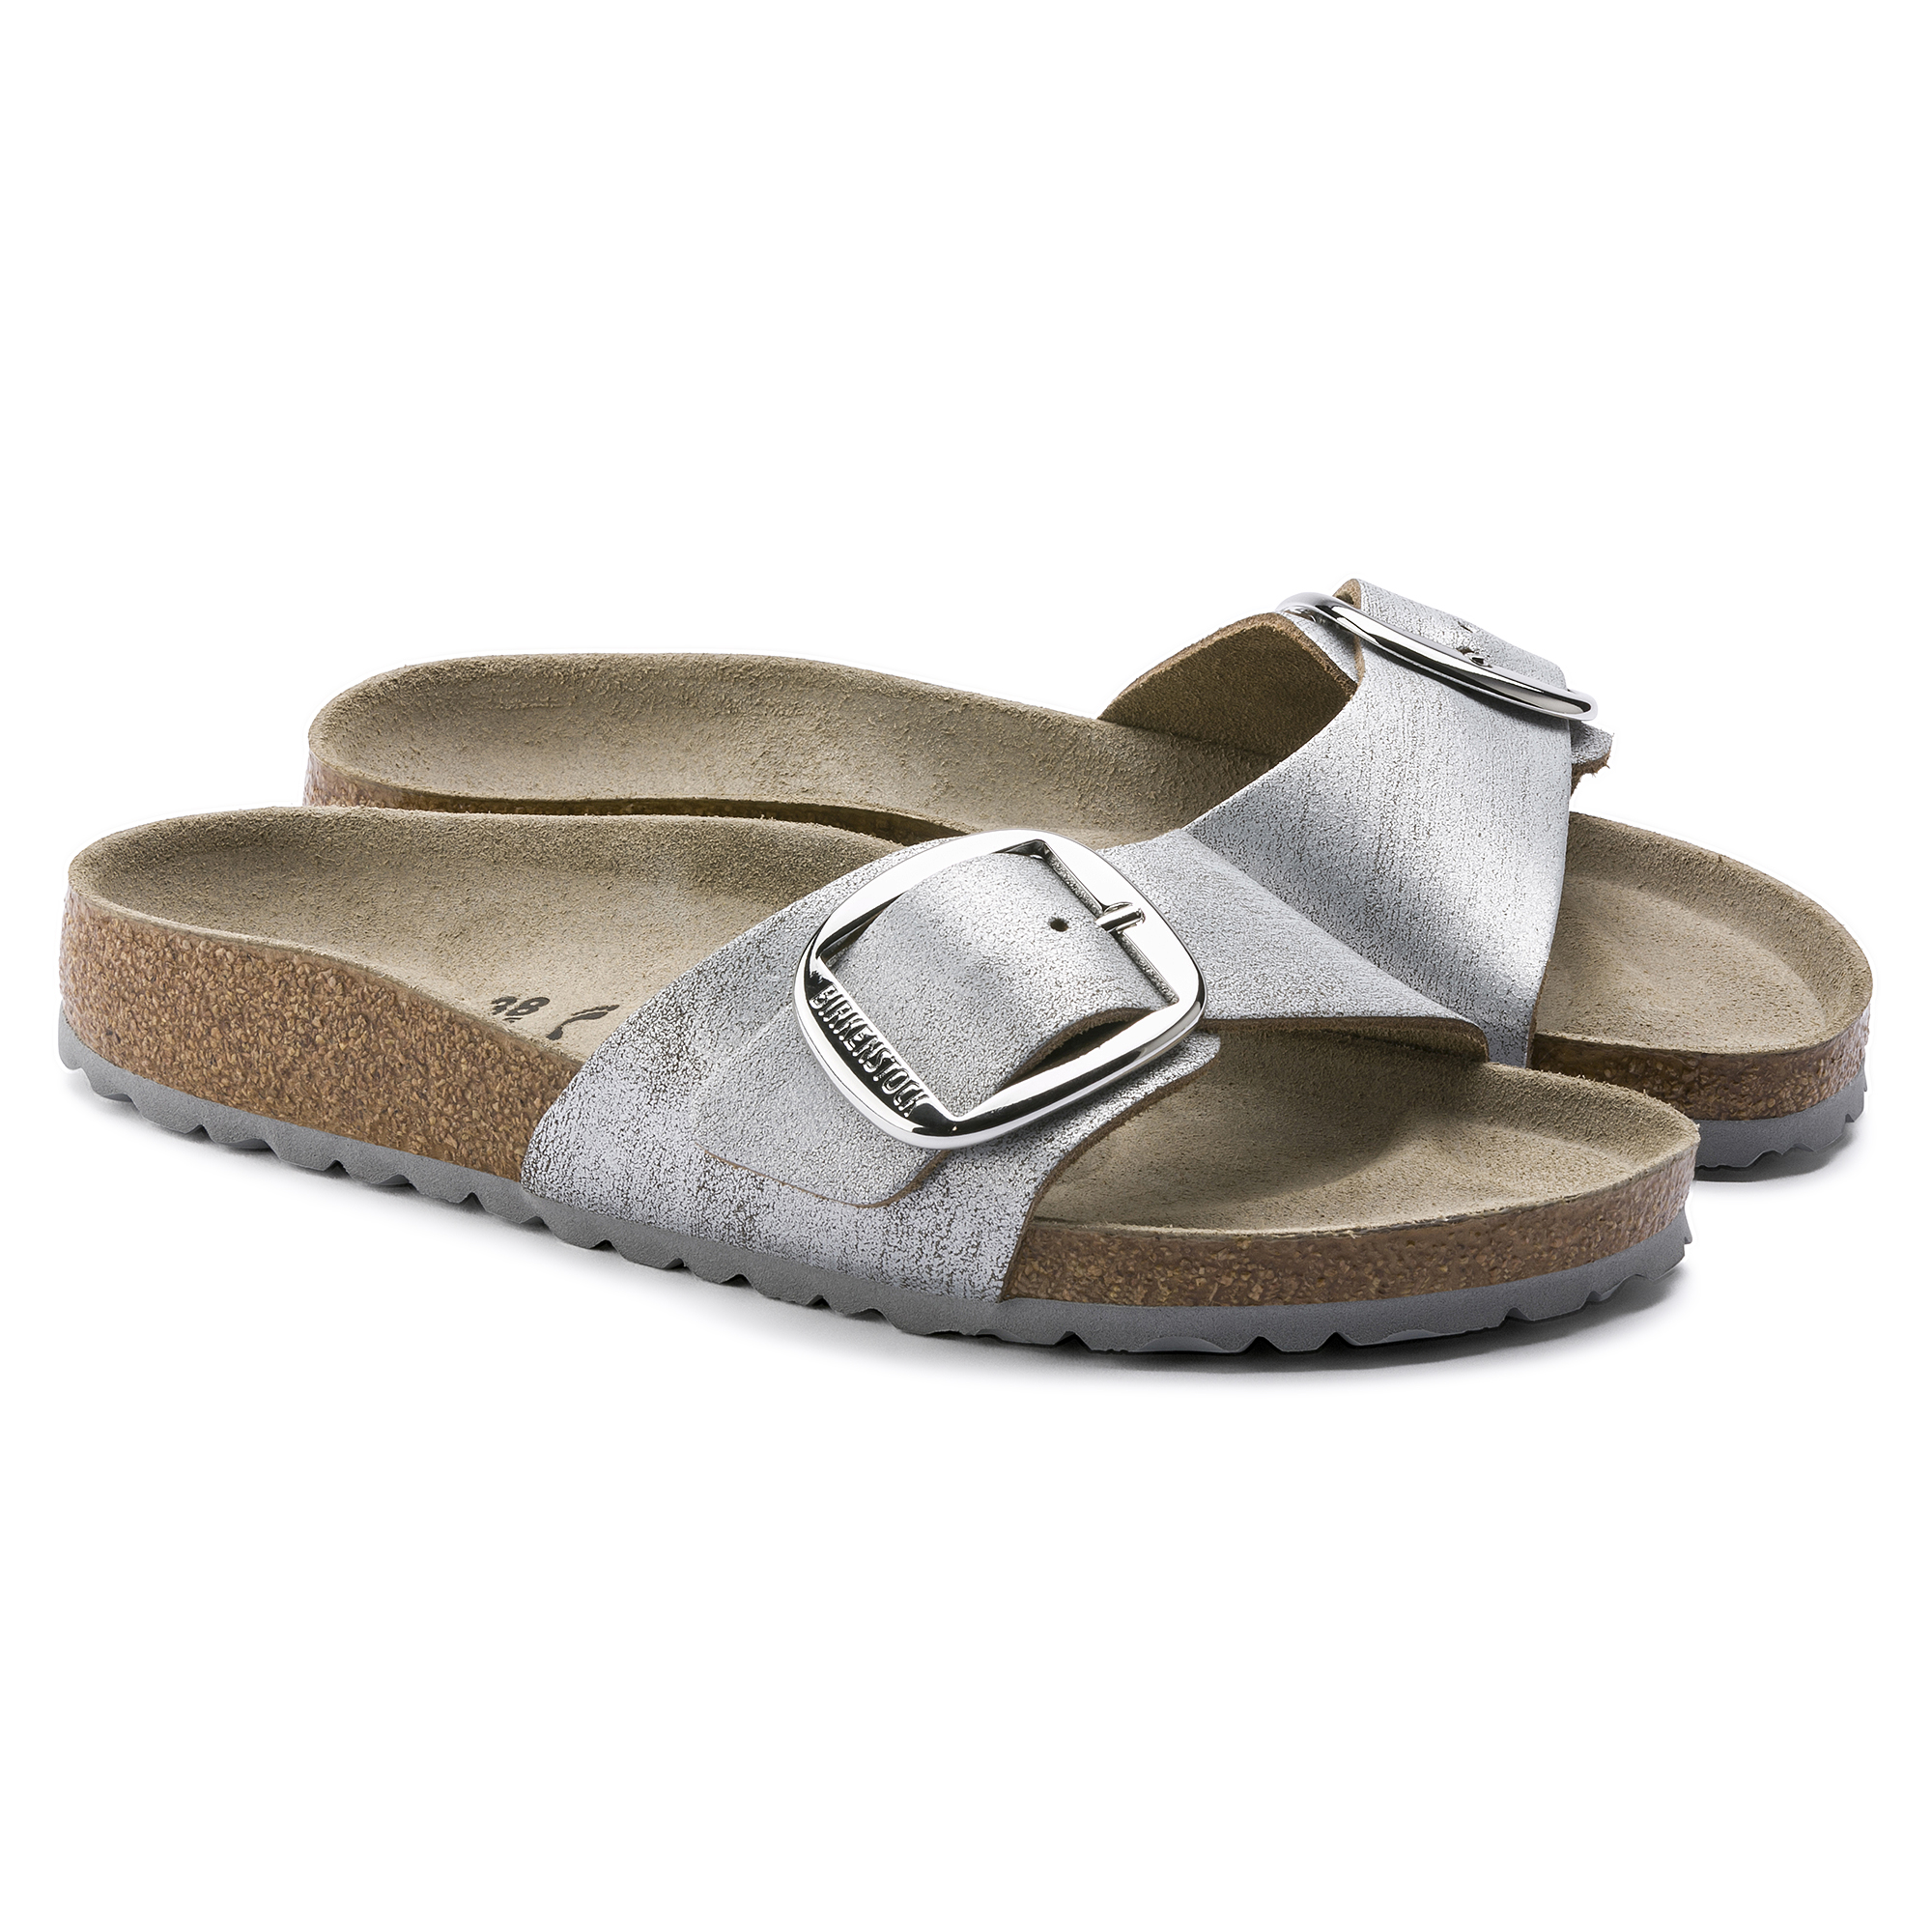 Birkenstock Madrid Slide Sandals Review: Fashionable and